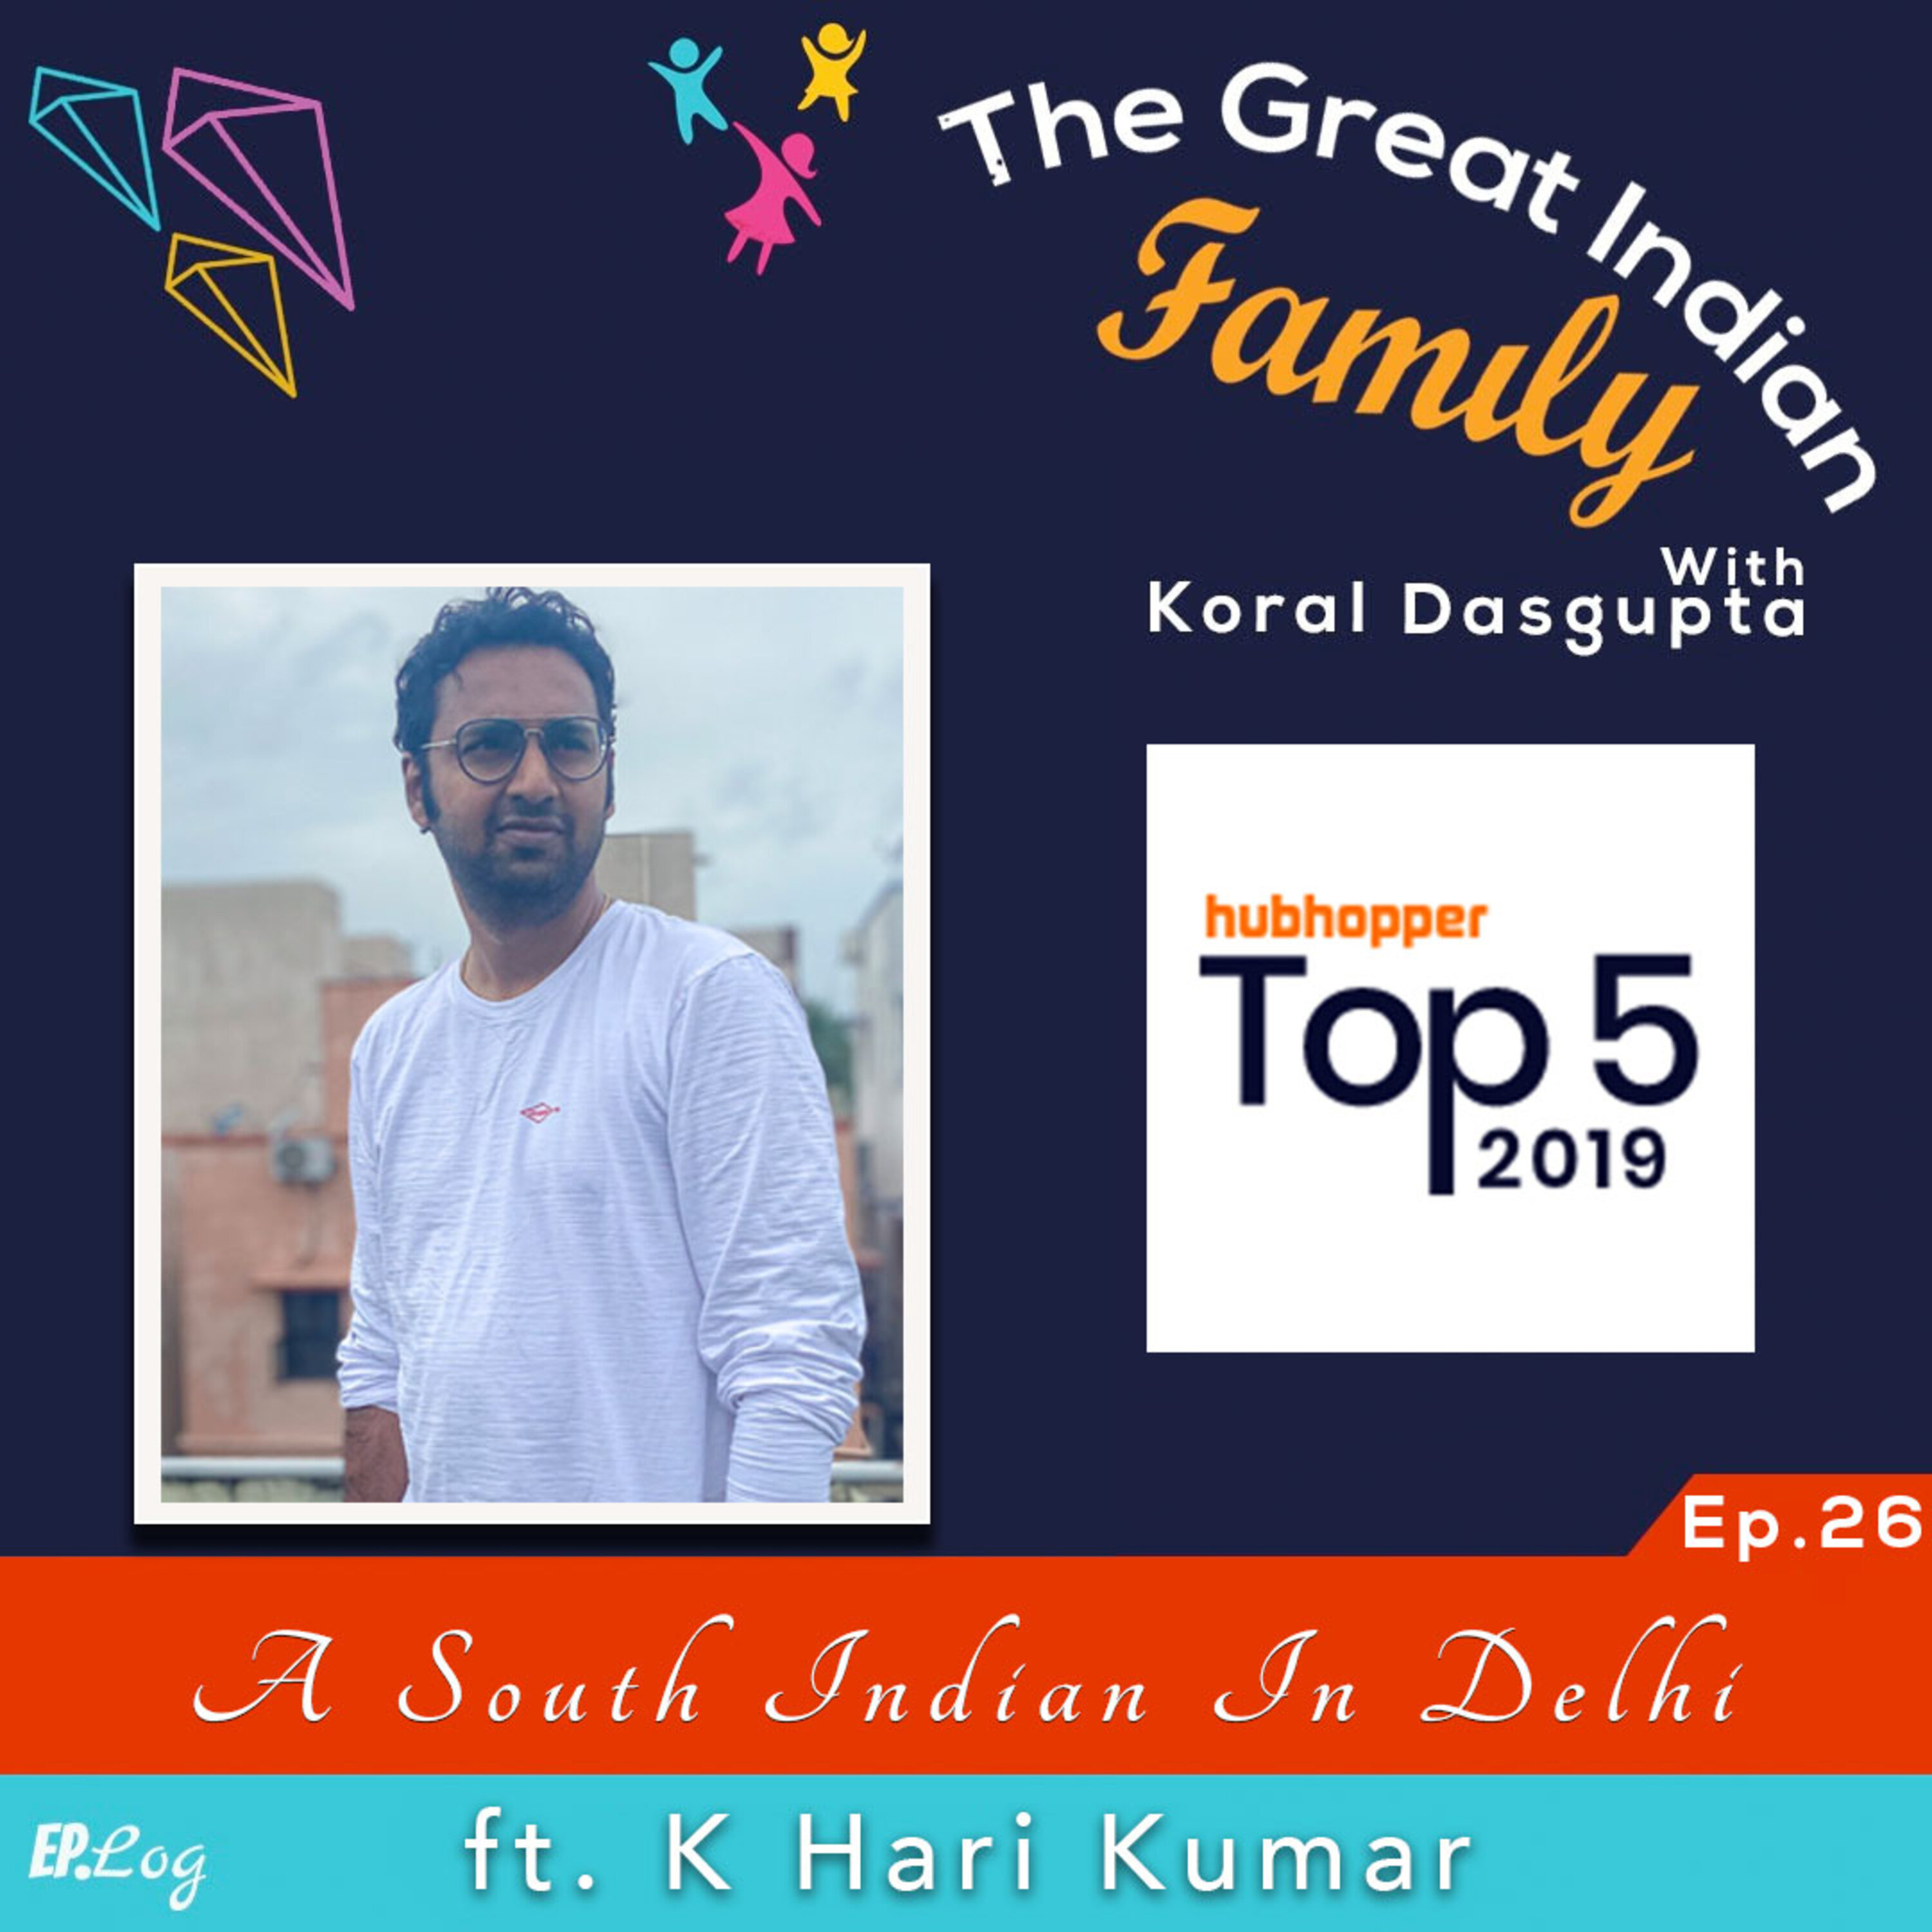 Ep.26 A South Indian in Delhi Reaffirming His Learning ft. K Hari Kumar, Author